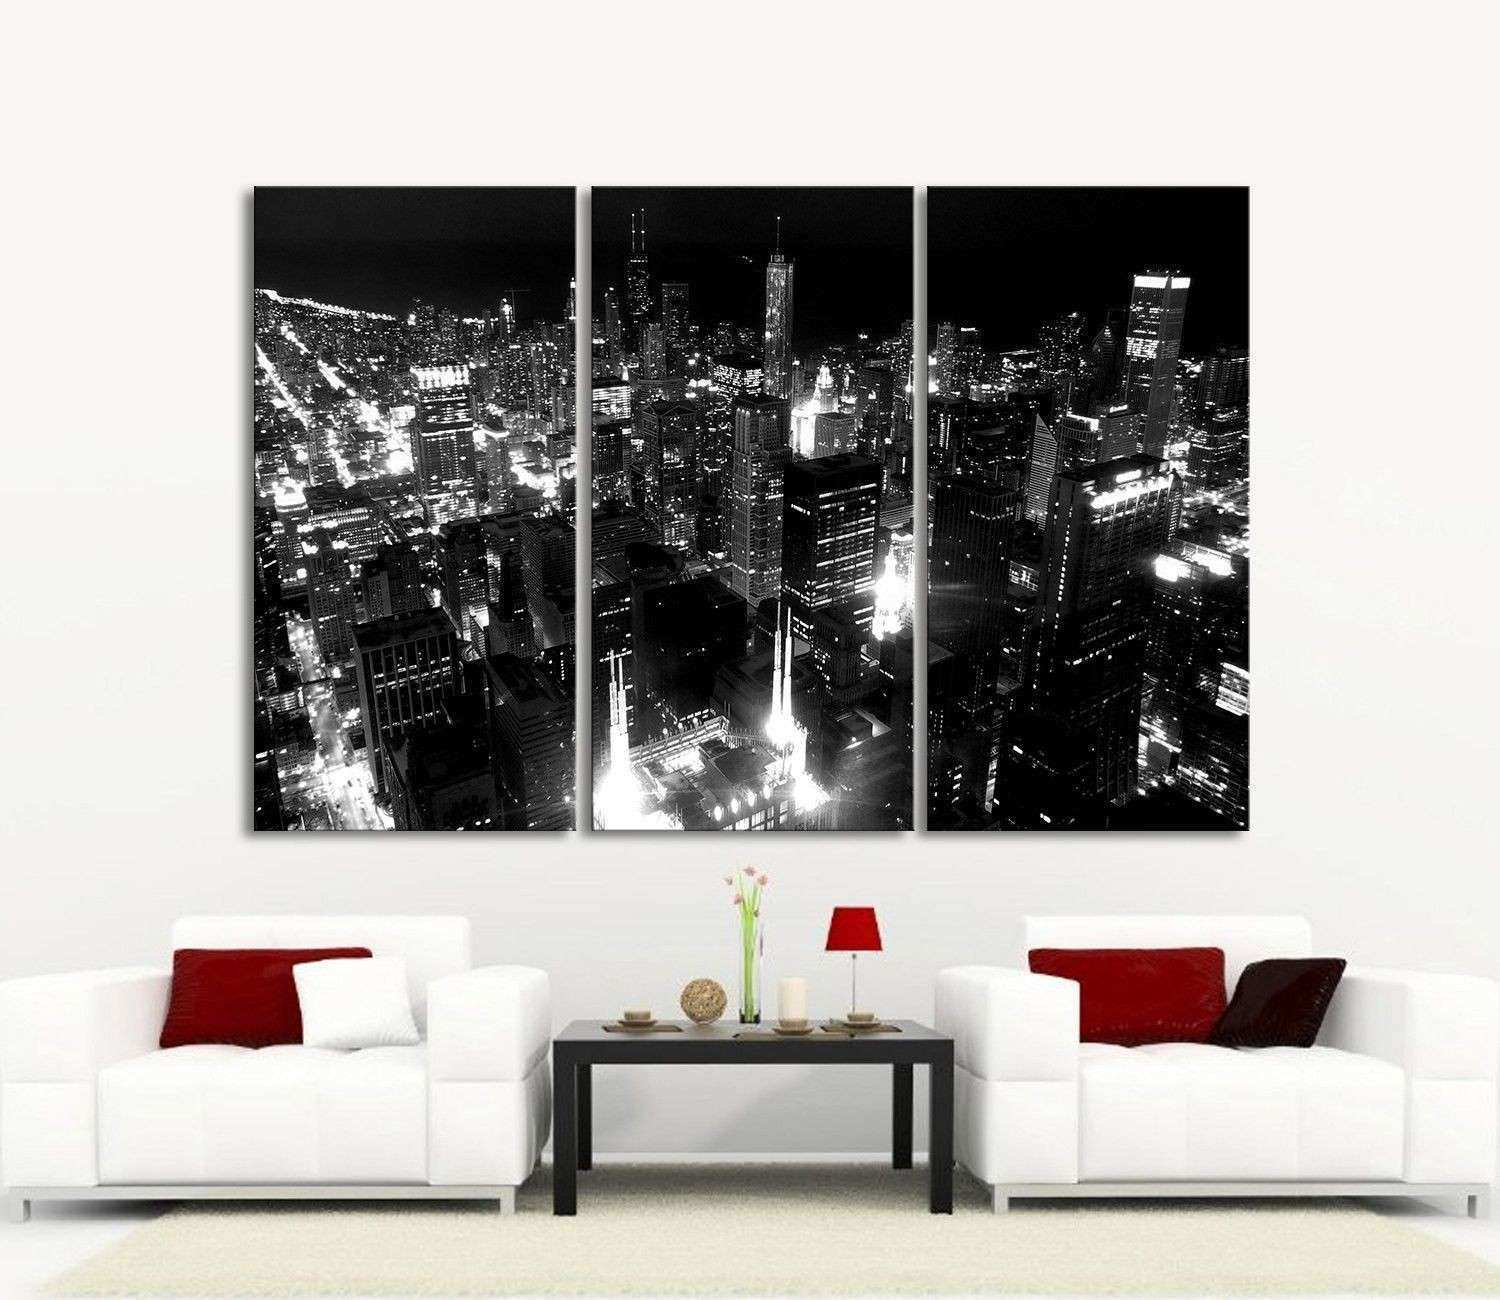 LARGE Wall Art Canvas Print Chicago City Skyline at Night 3 Panel